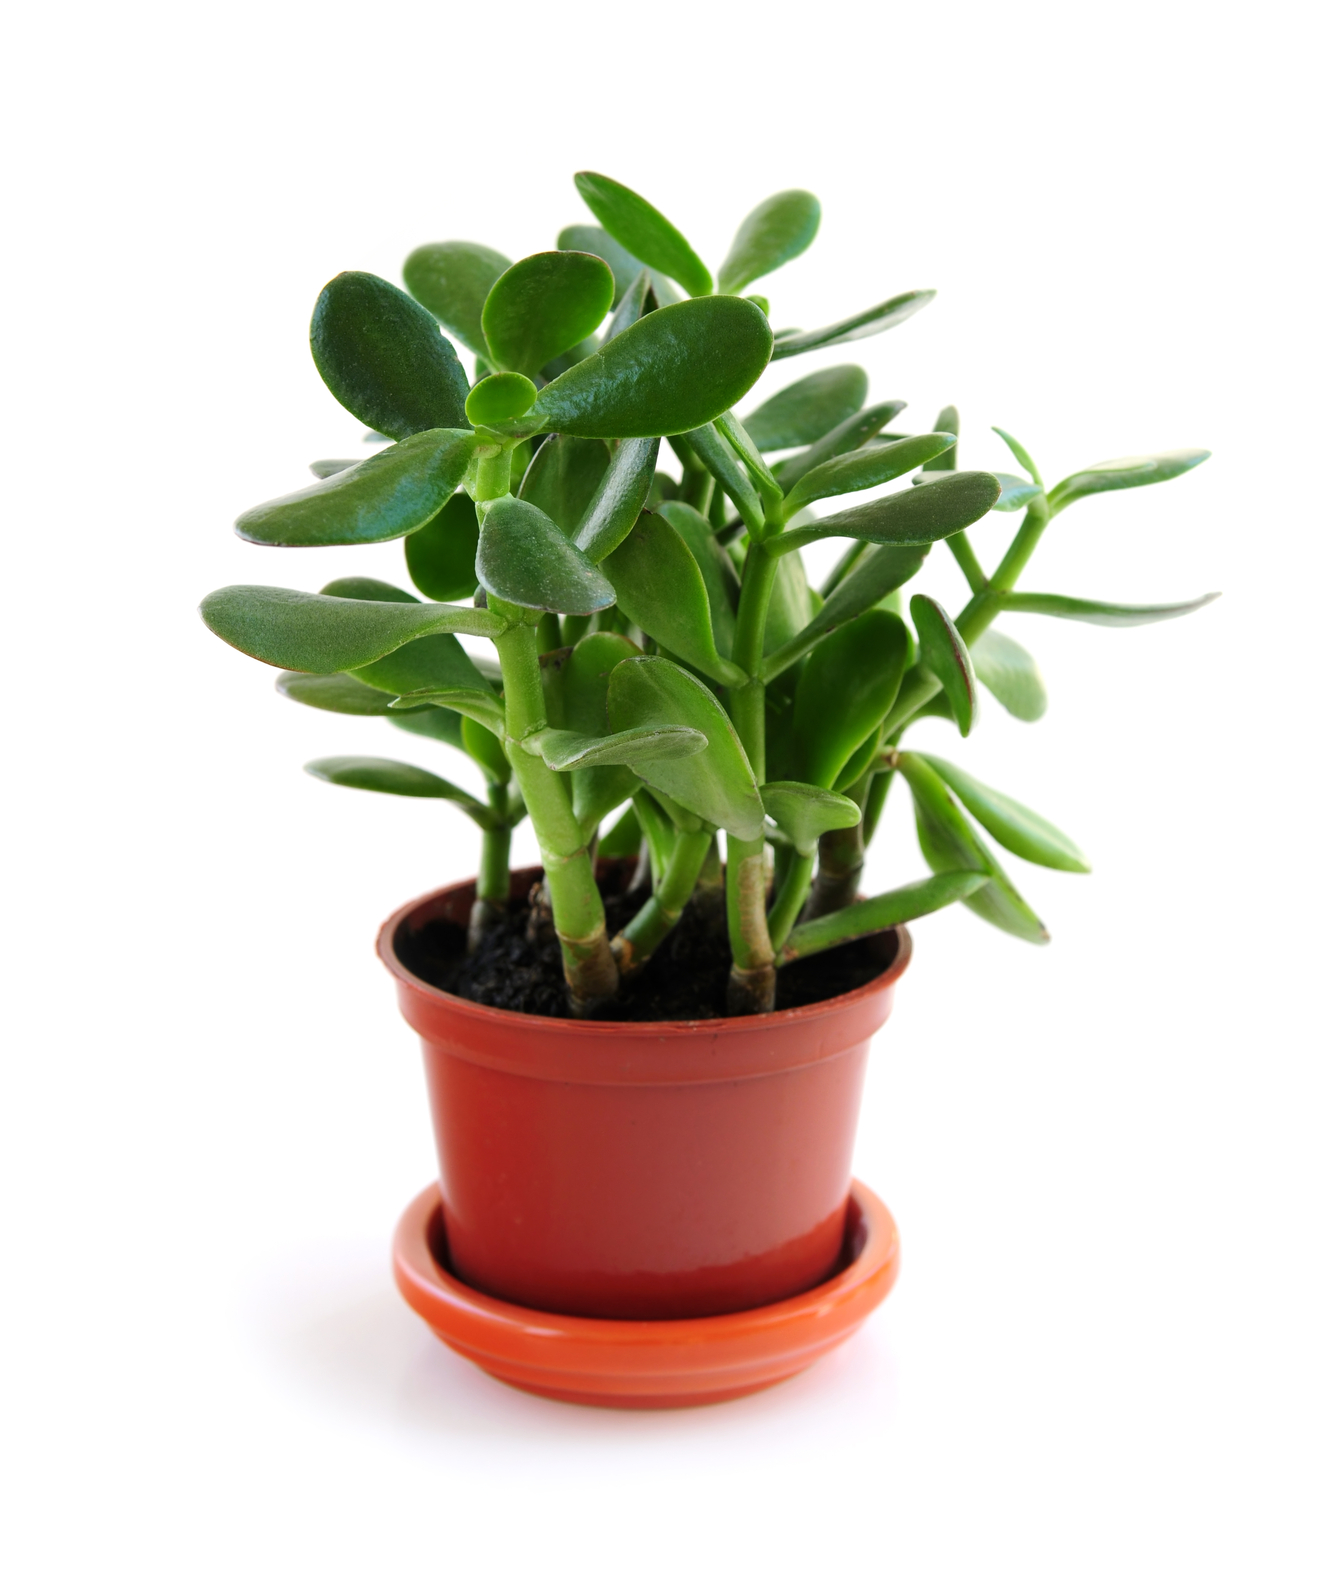 Drawn pot plant five leave And Jade Plants How Grow